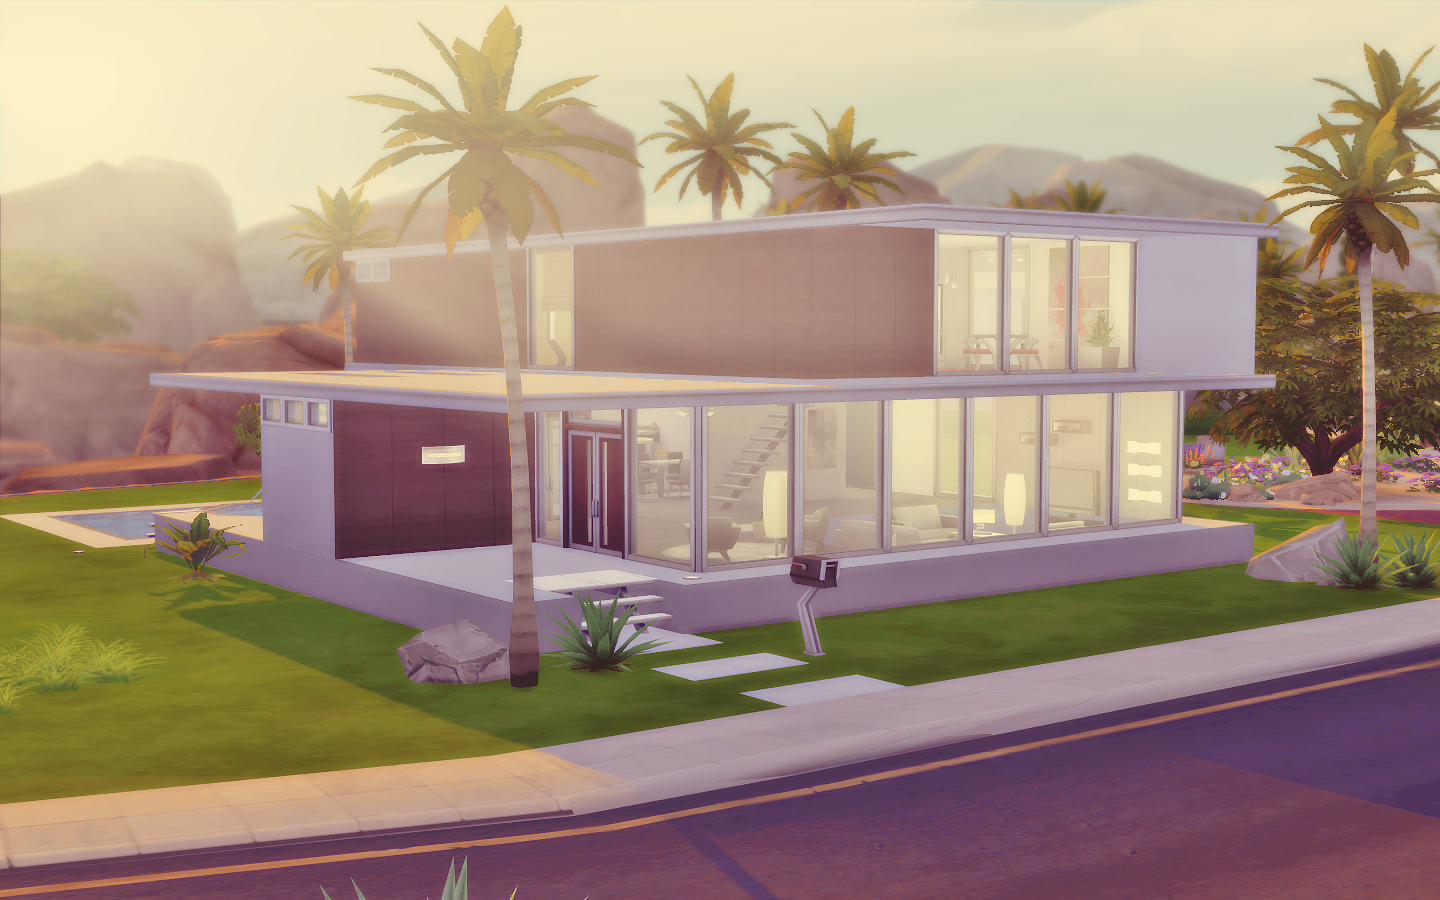 House 06 the sims 4 via sims for Casas modernas sims 4 paso a paso